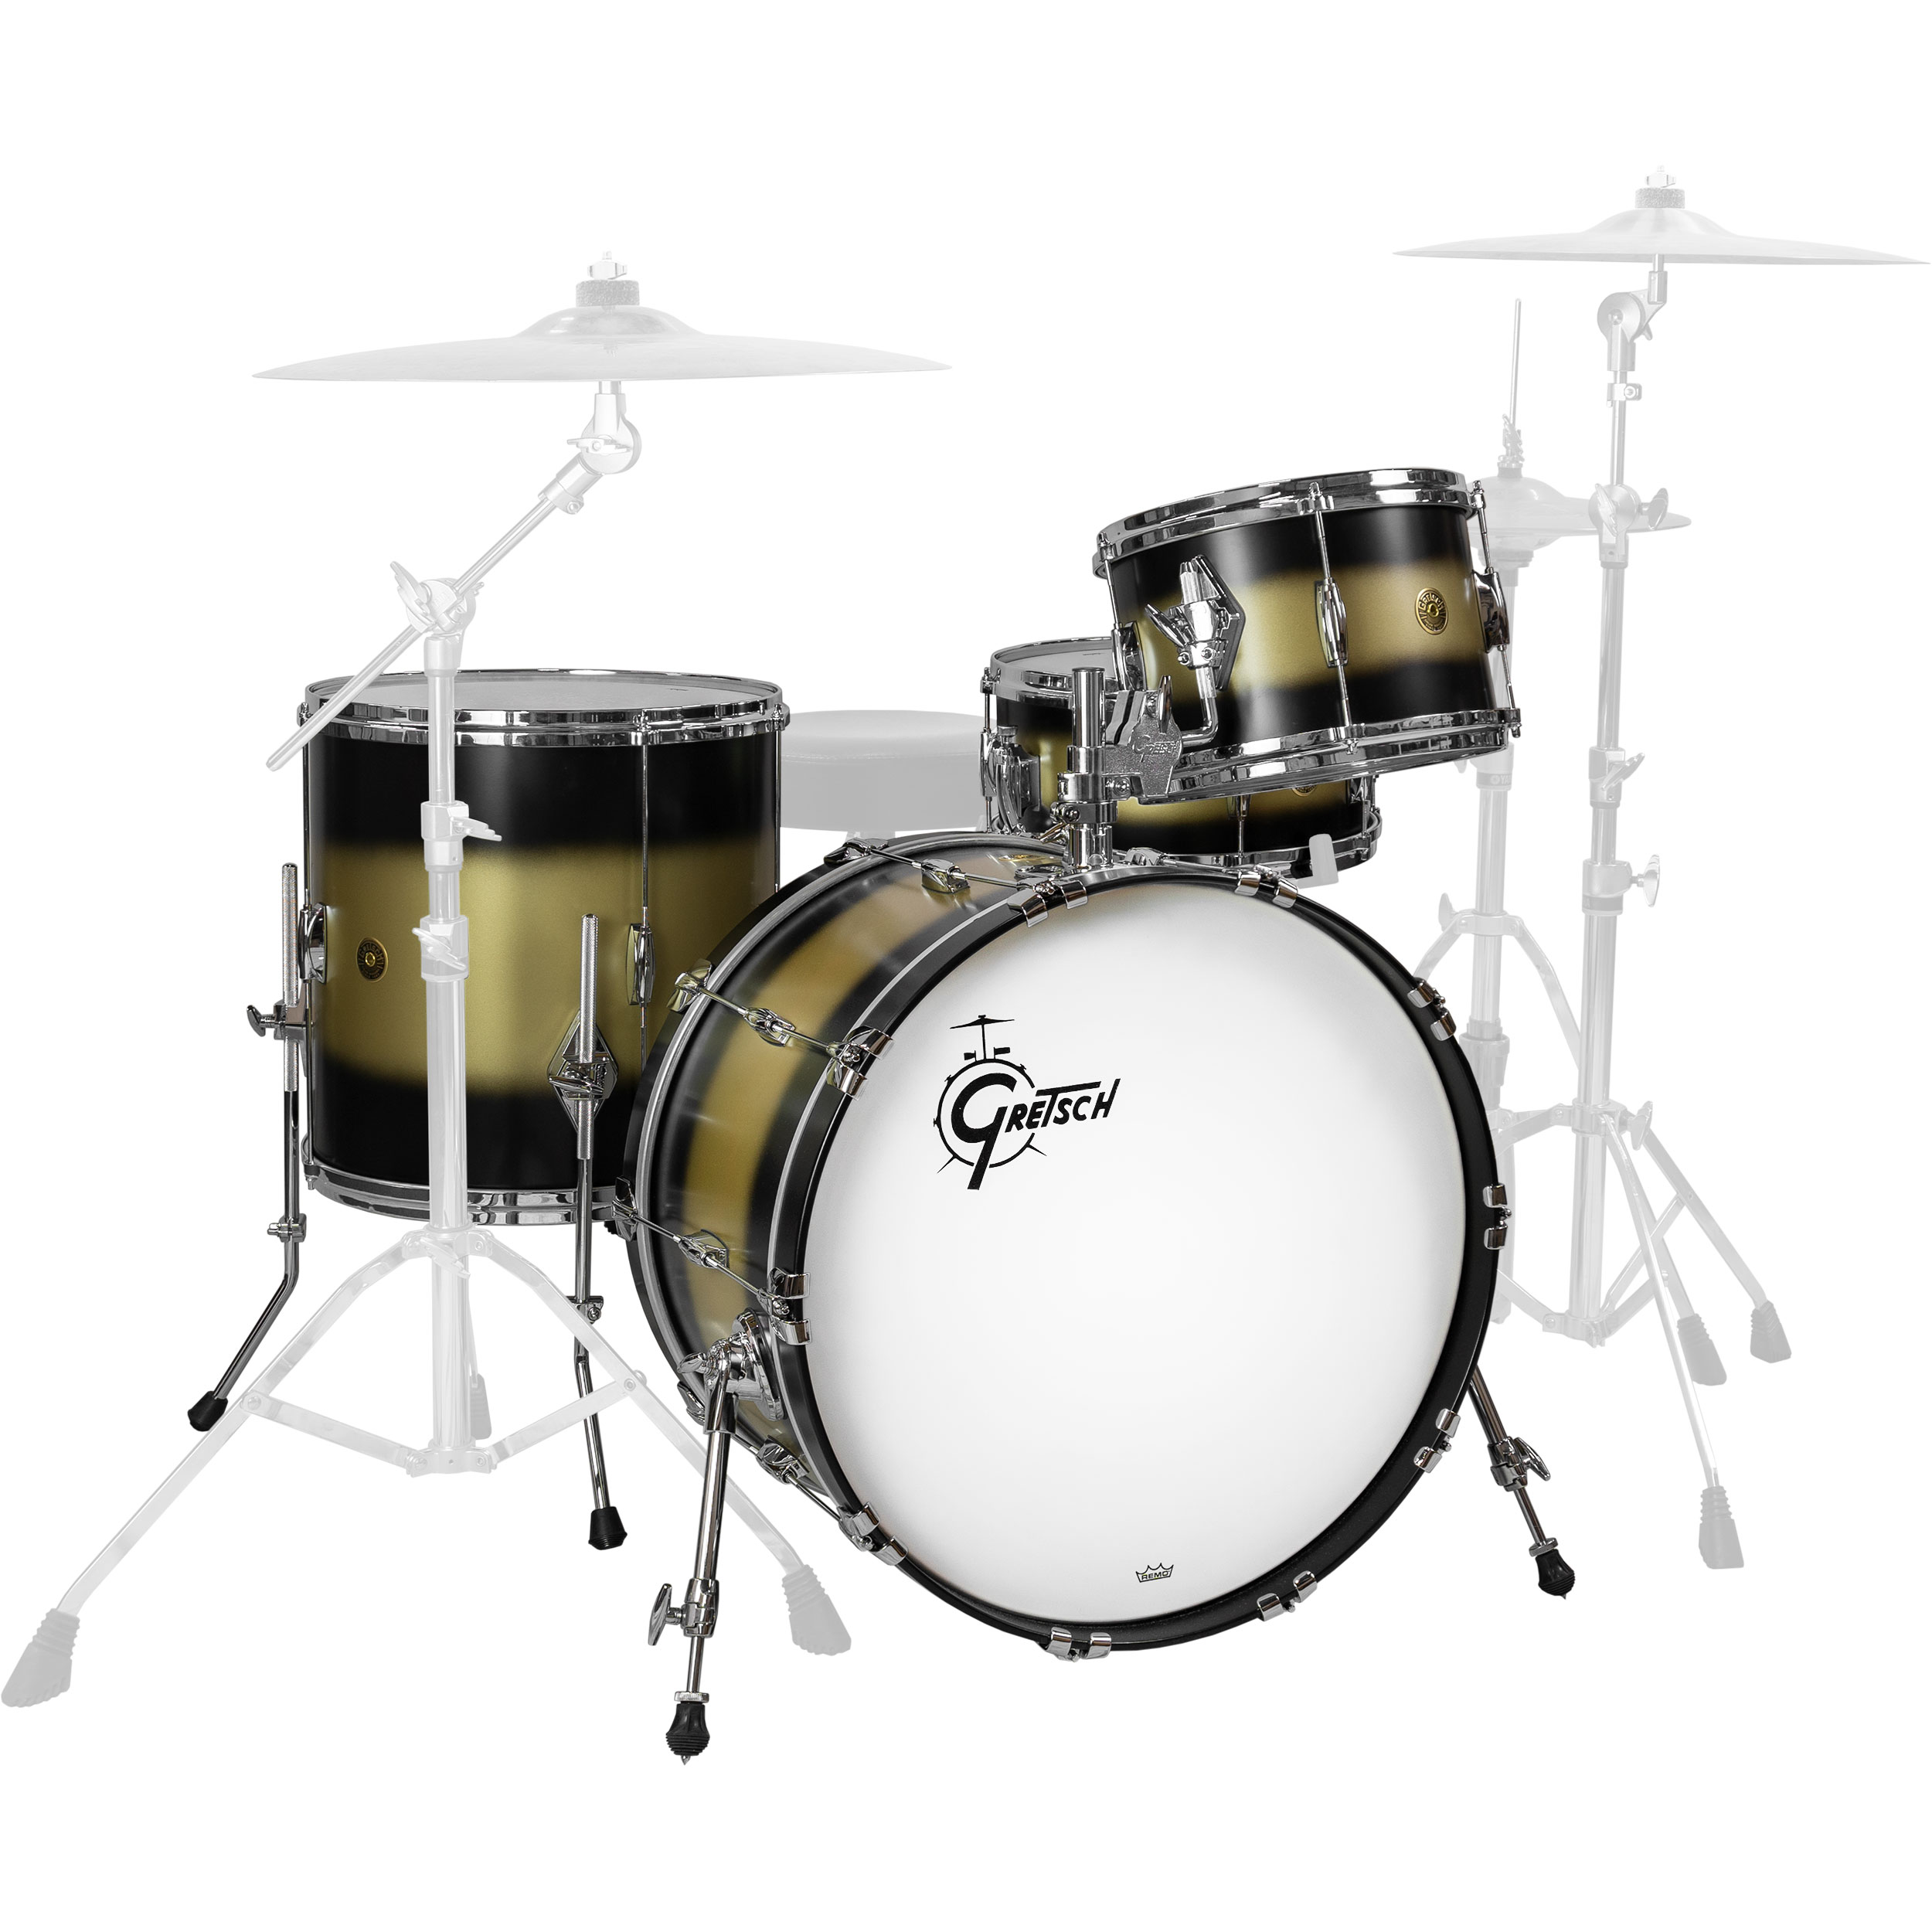 "Gretsch USA Custom Heritage 4-Piece Drum Set Shell Pack (22"" Bass, 12/16"" Toms, 14"" Snare) in Black Gold Duco"